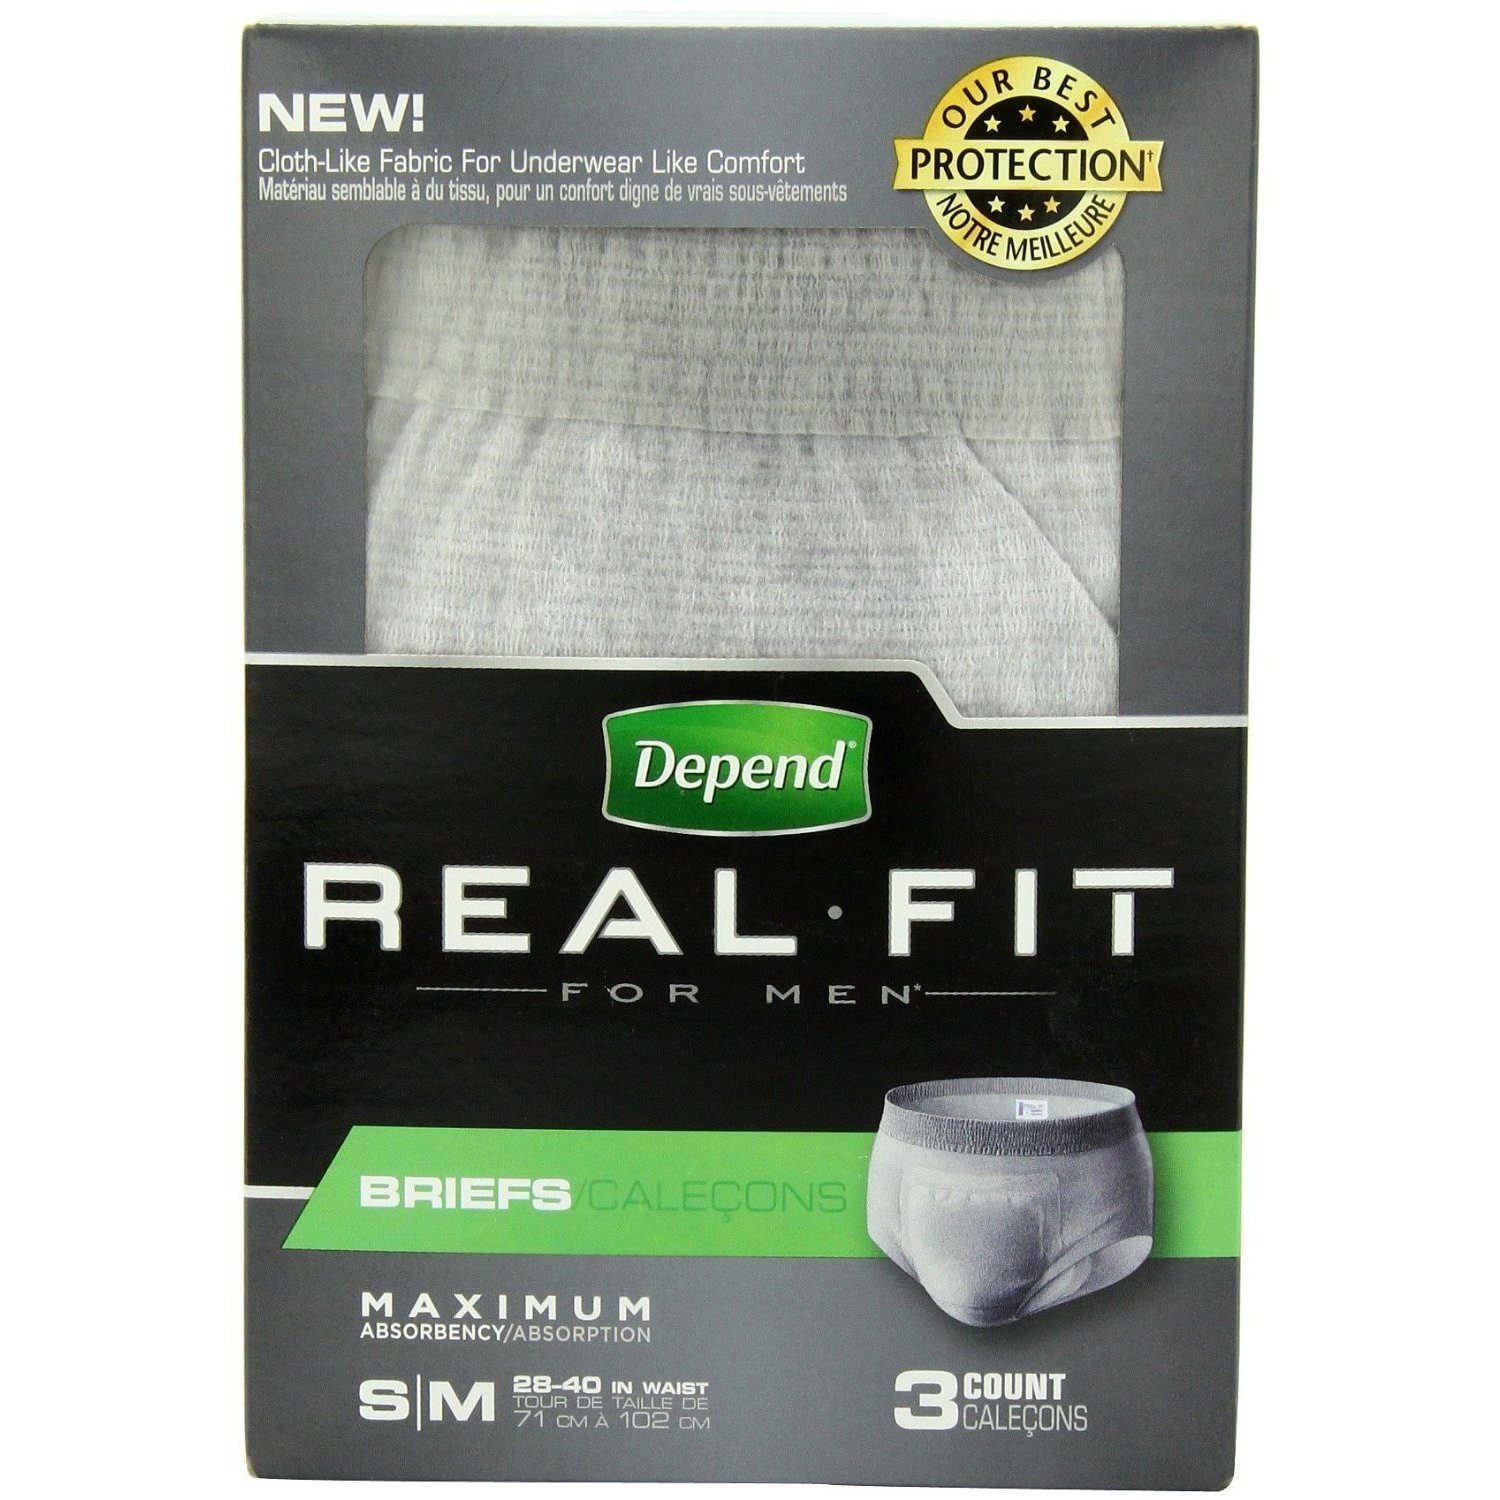 Depend Real Fit for Men Small/Medium Briefs (Pack of 3) (...